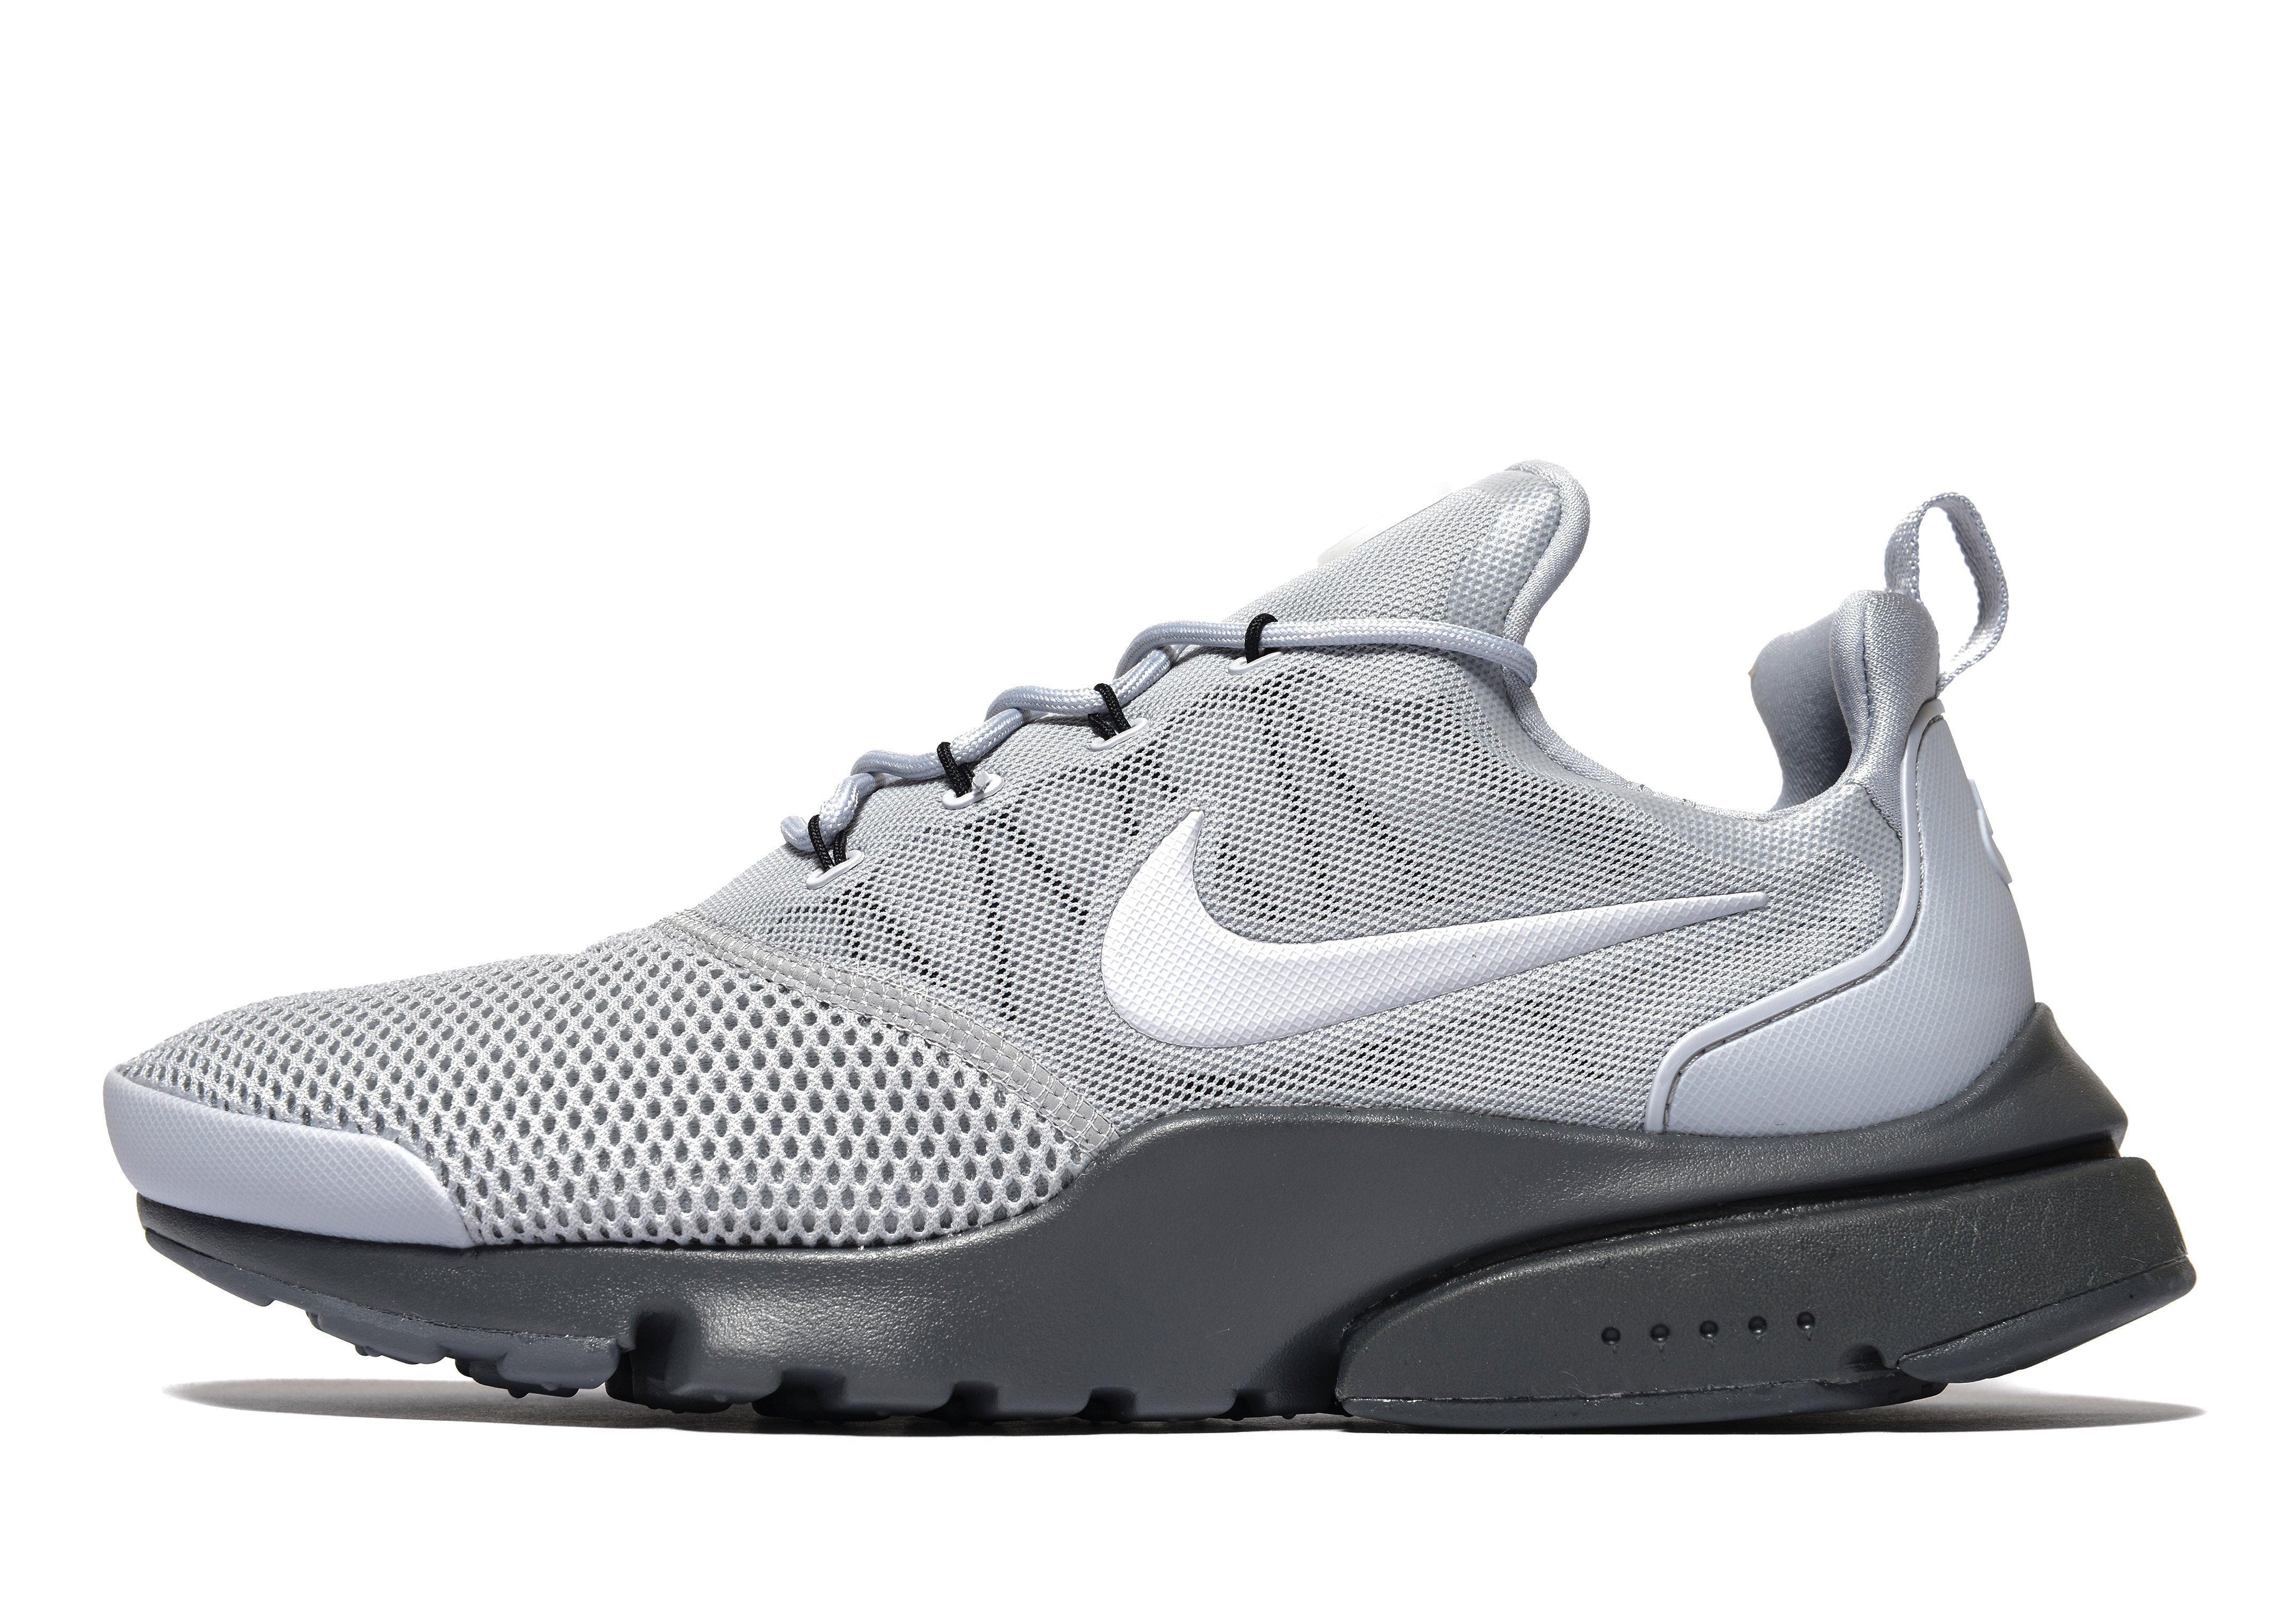 lyst nike air presto fly in gray for men. Black Bedroom Furniture Sets. Home Design Ideas